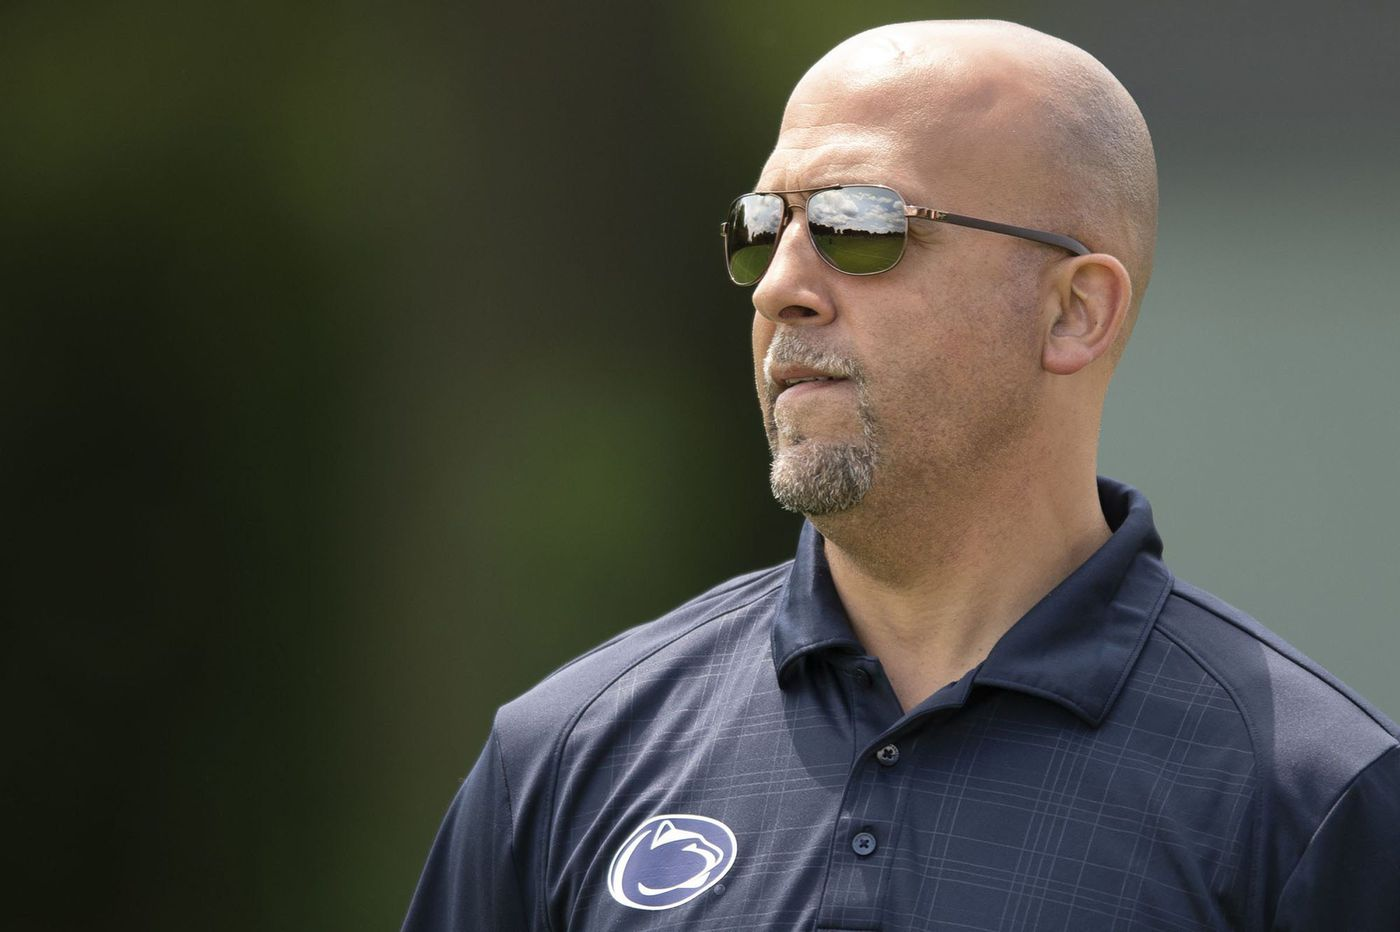 Penn State comes in at No. 4 in first College Football Playoff rankings